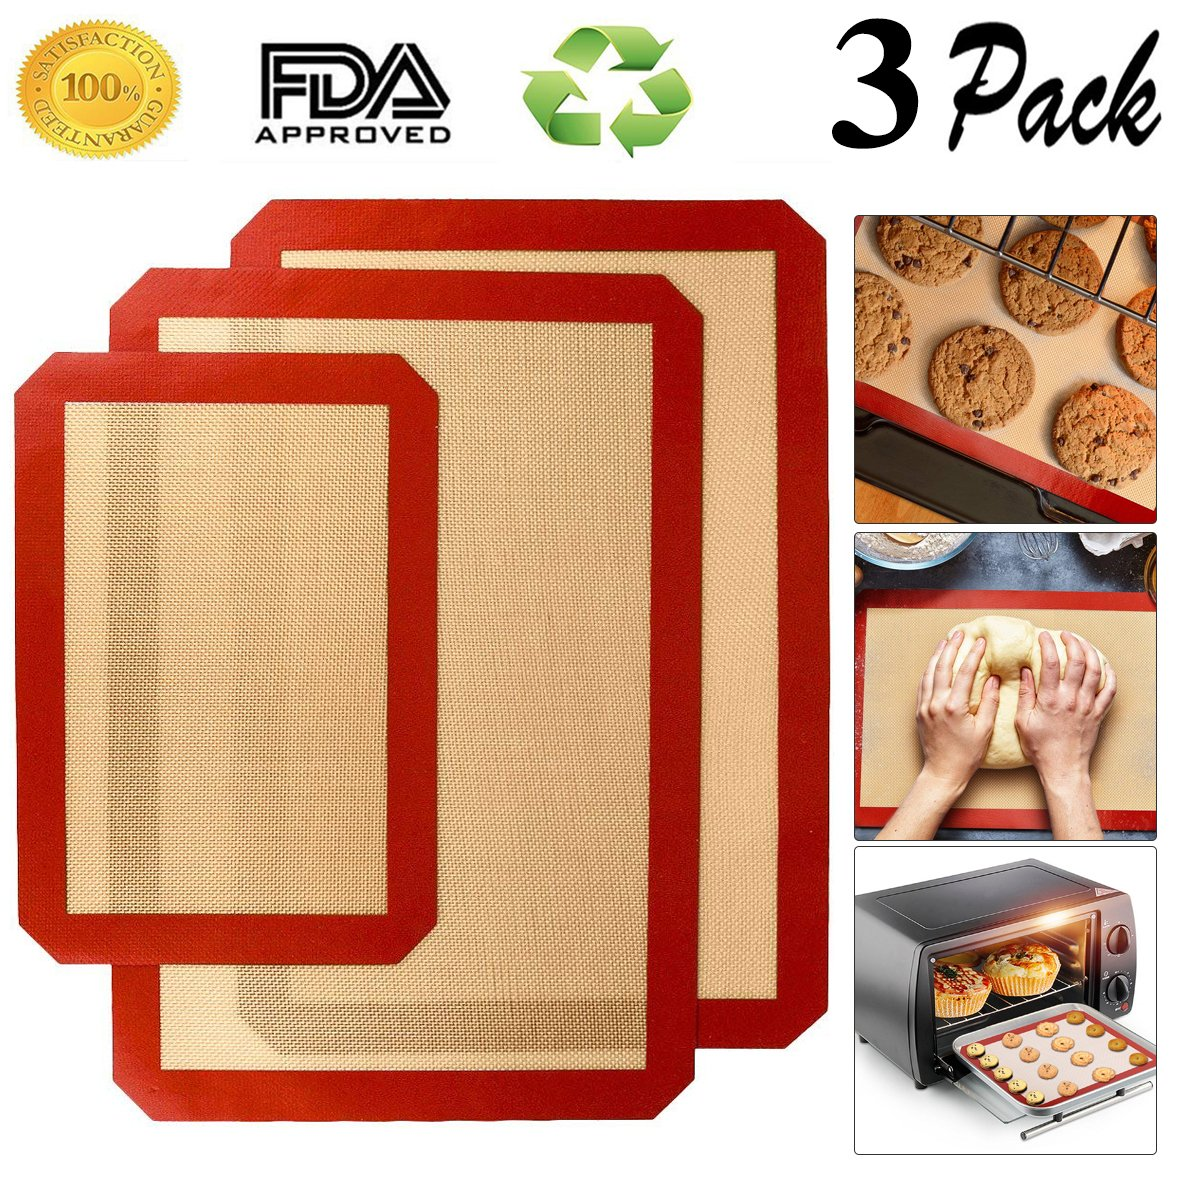 Cookey Silicone Baking Mats Non-stick Non-slip Washable Reusable Heat-resistant BPA Free FDA and LFGB Certified Approved,Set of 3